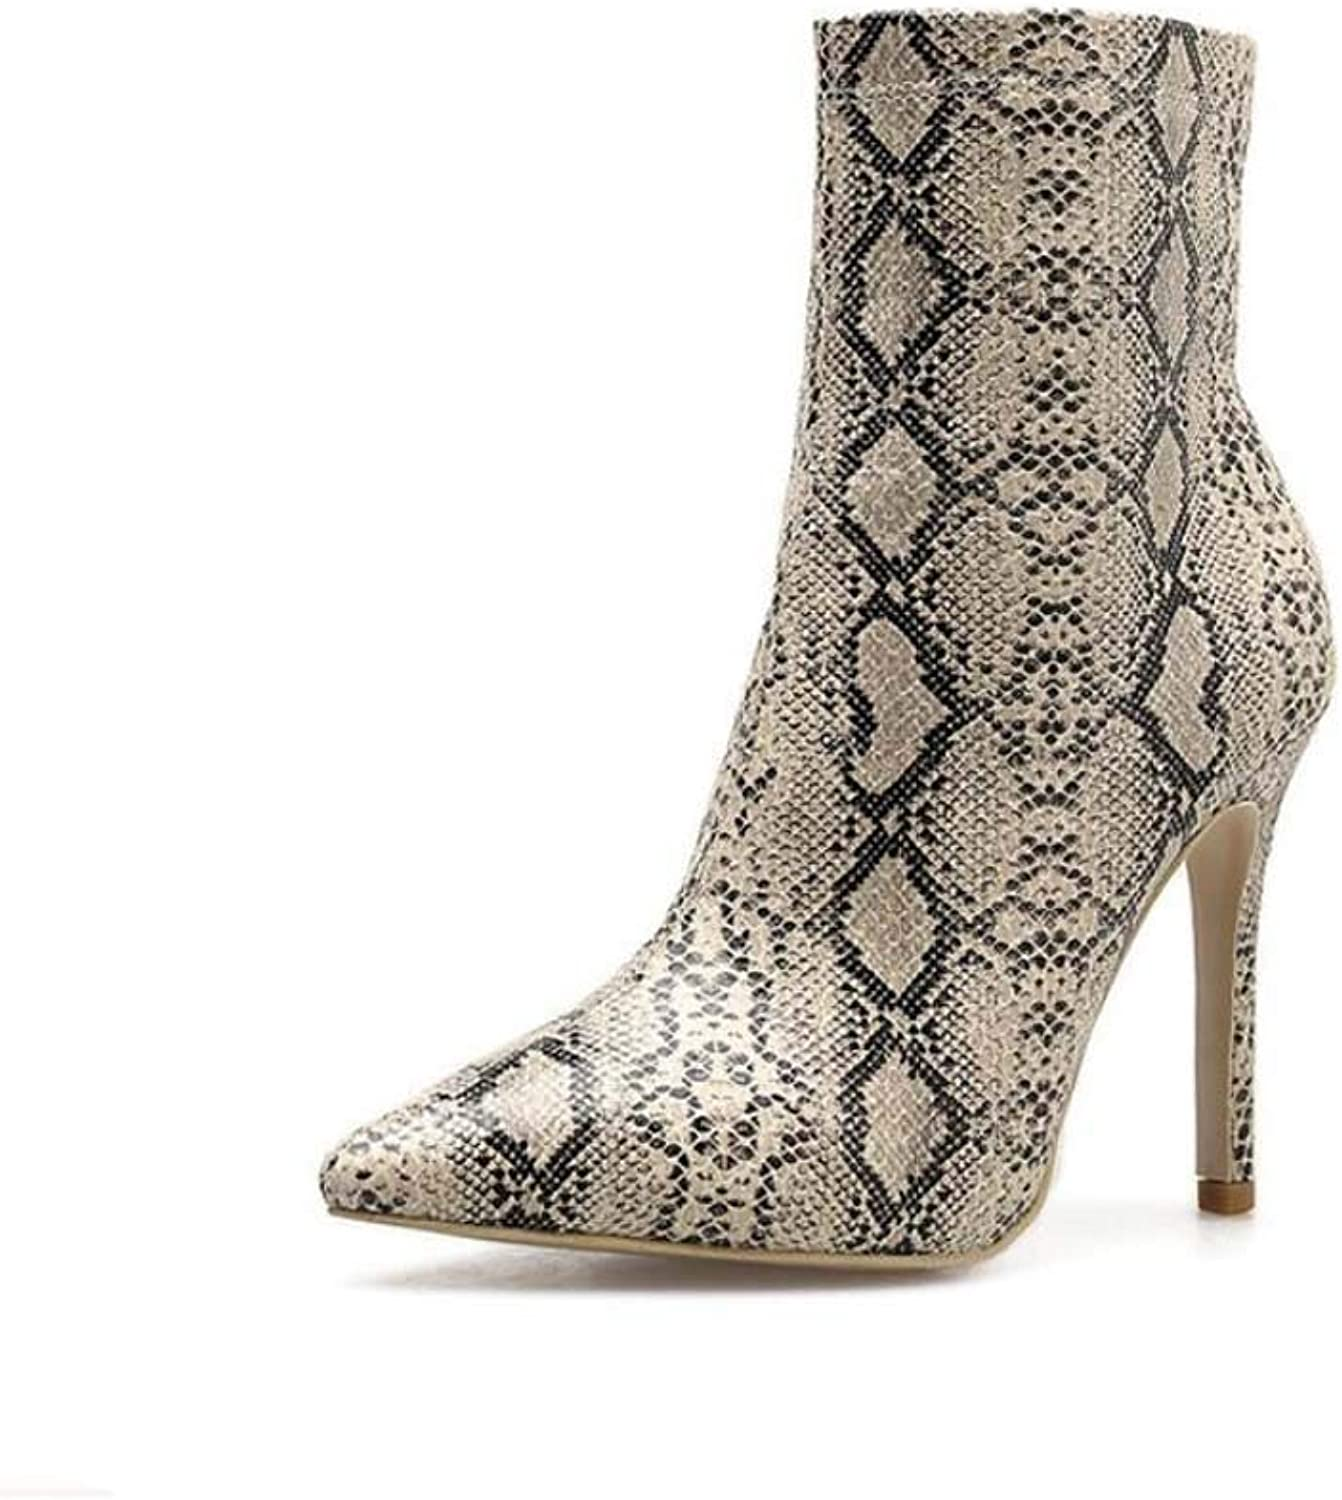 Sexy Snake Pattern Pointed Toe High Heels Ankle Bootie Women 10.5cm Stiletto Zipper Martin Boot OL Court shoes EU Size 34-40